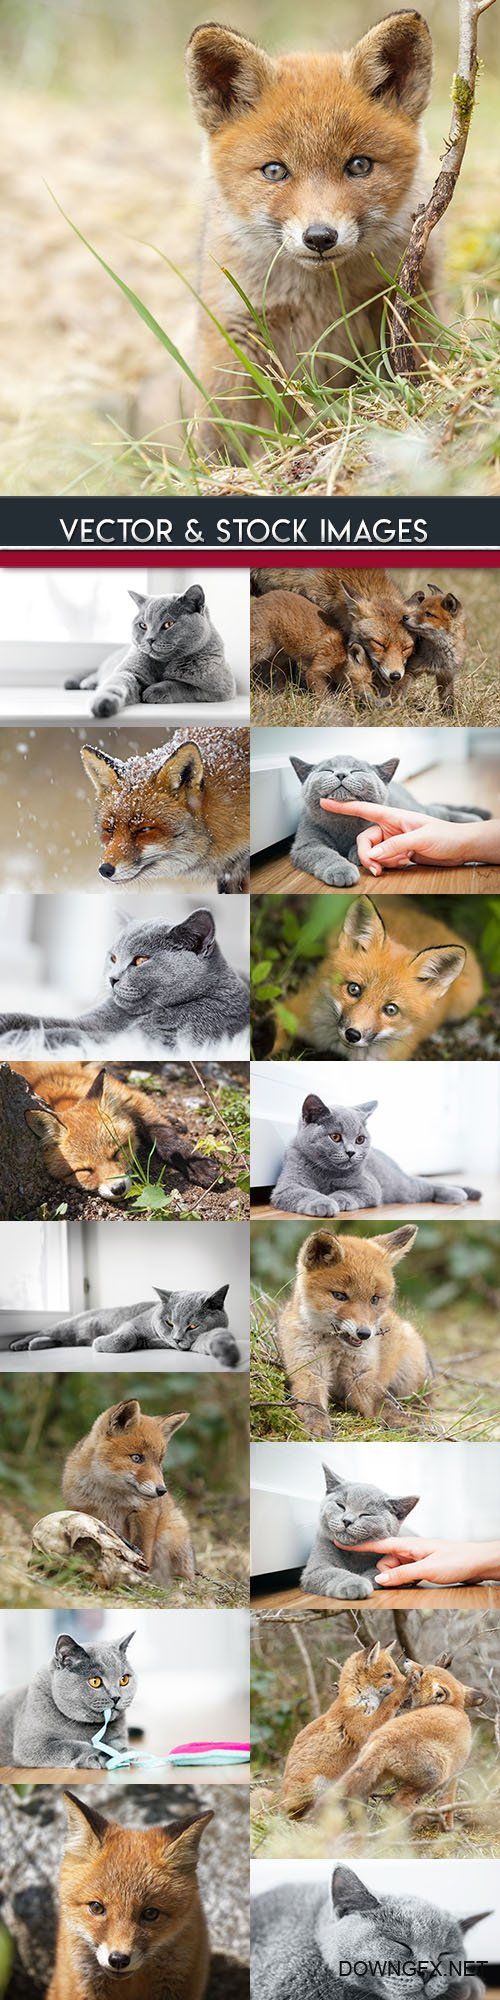 Grey British kitten and red fox with foxes